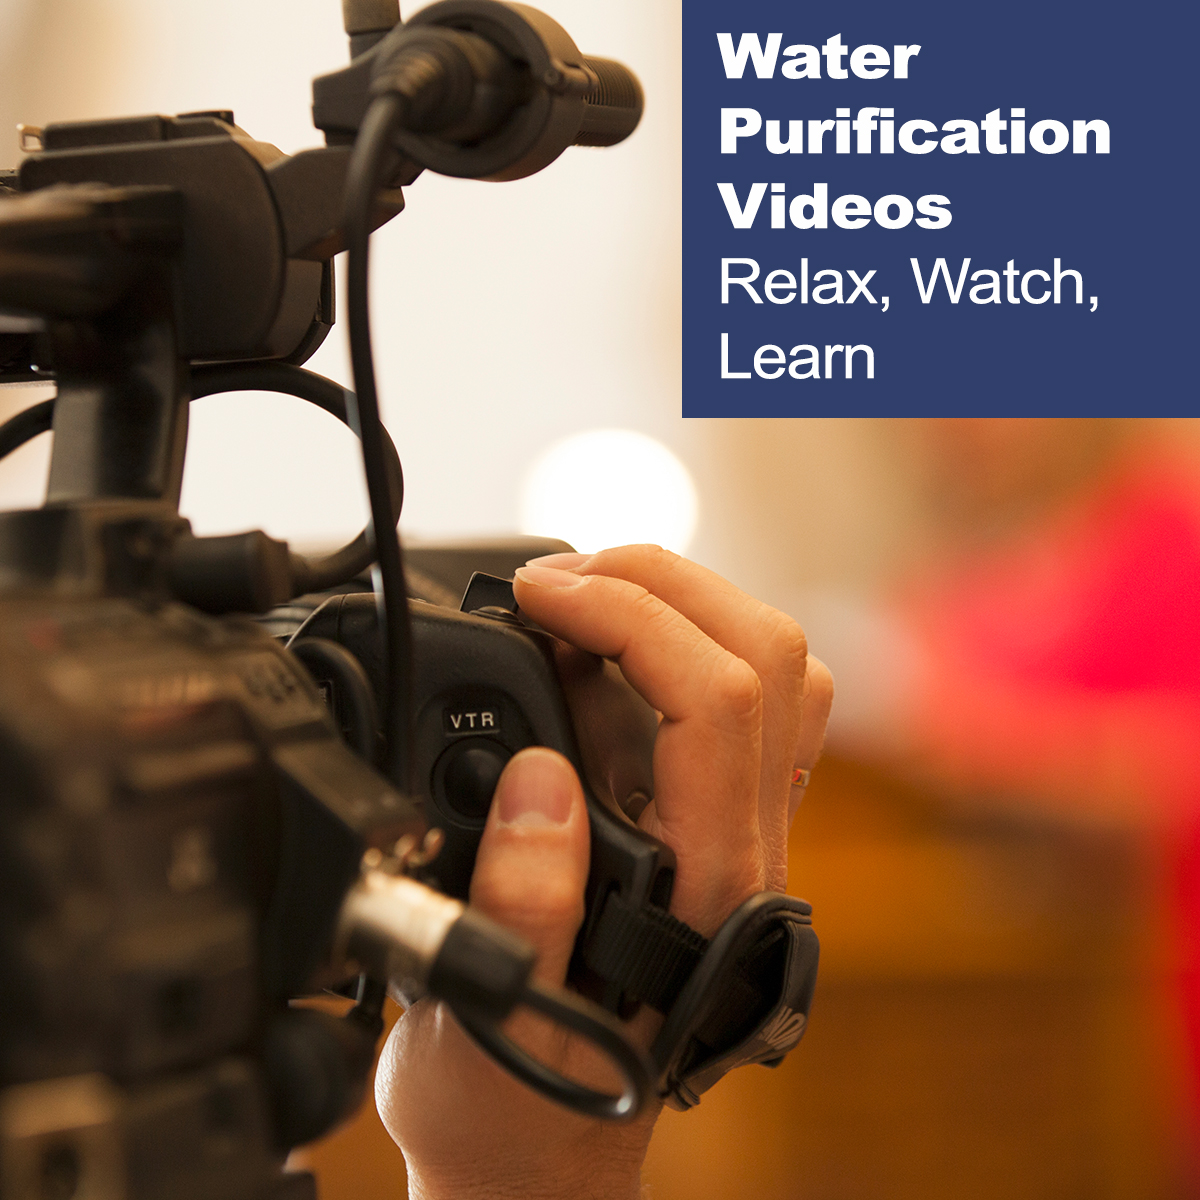 water purification Videos